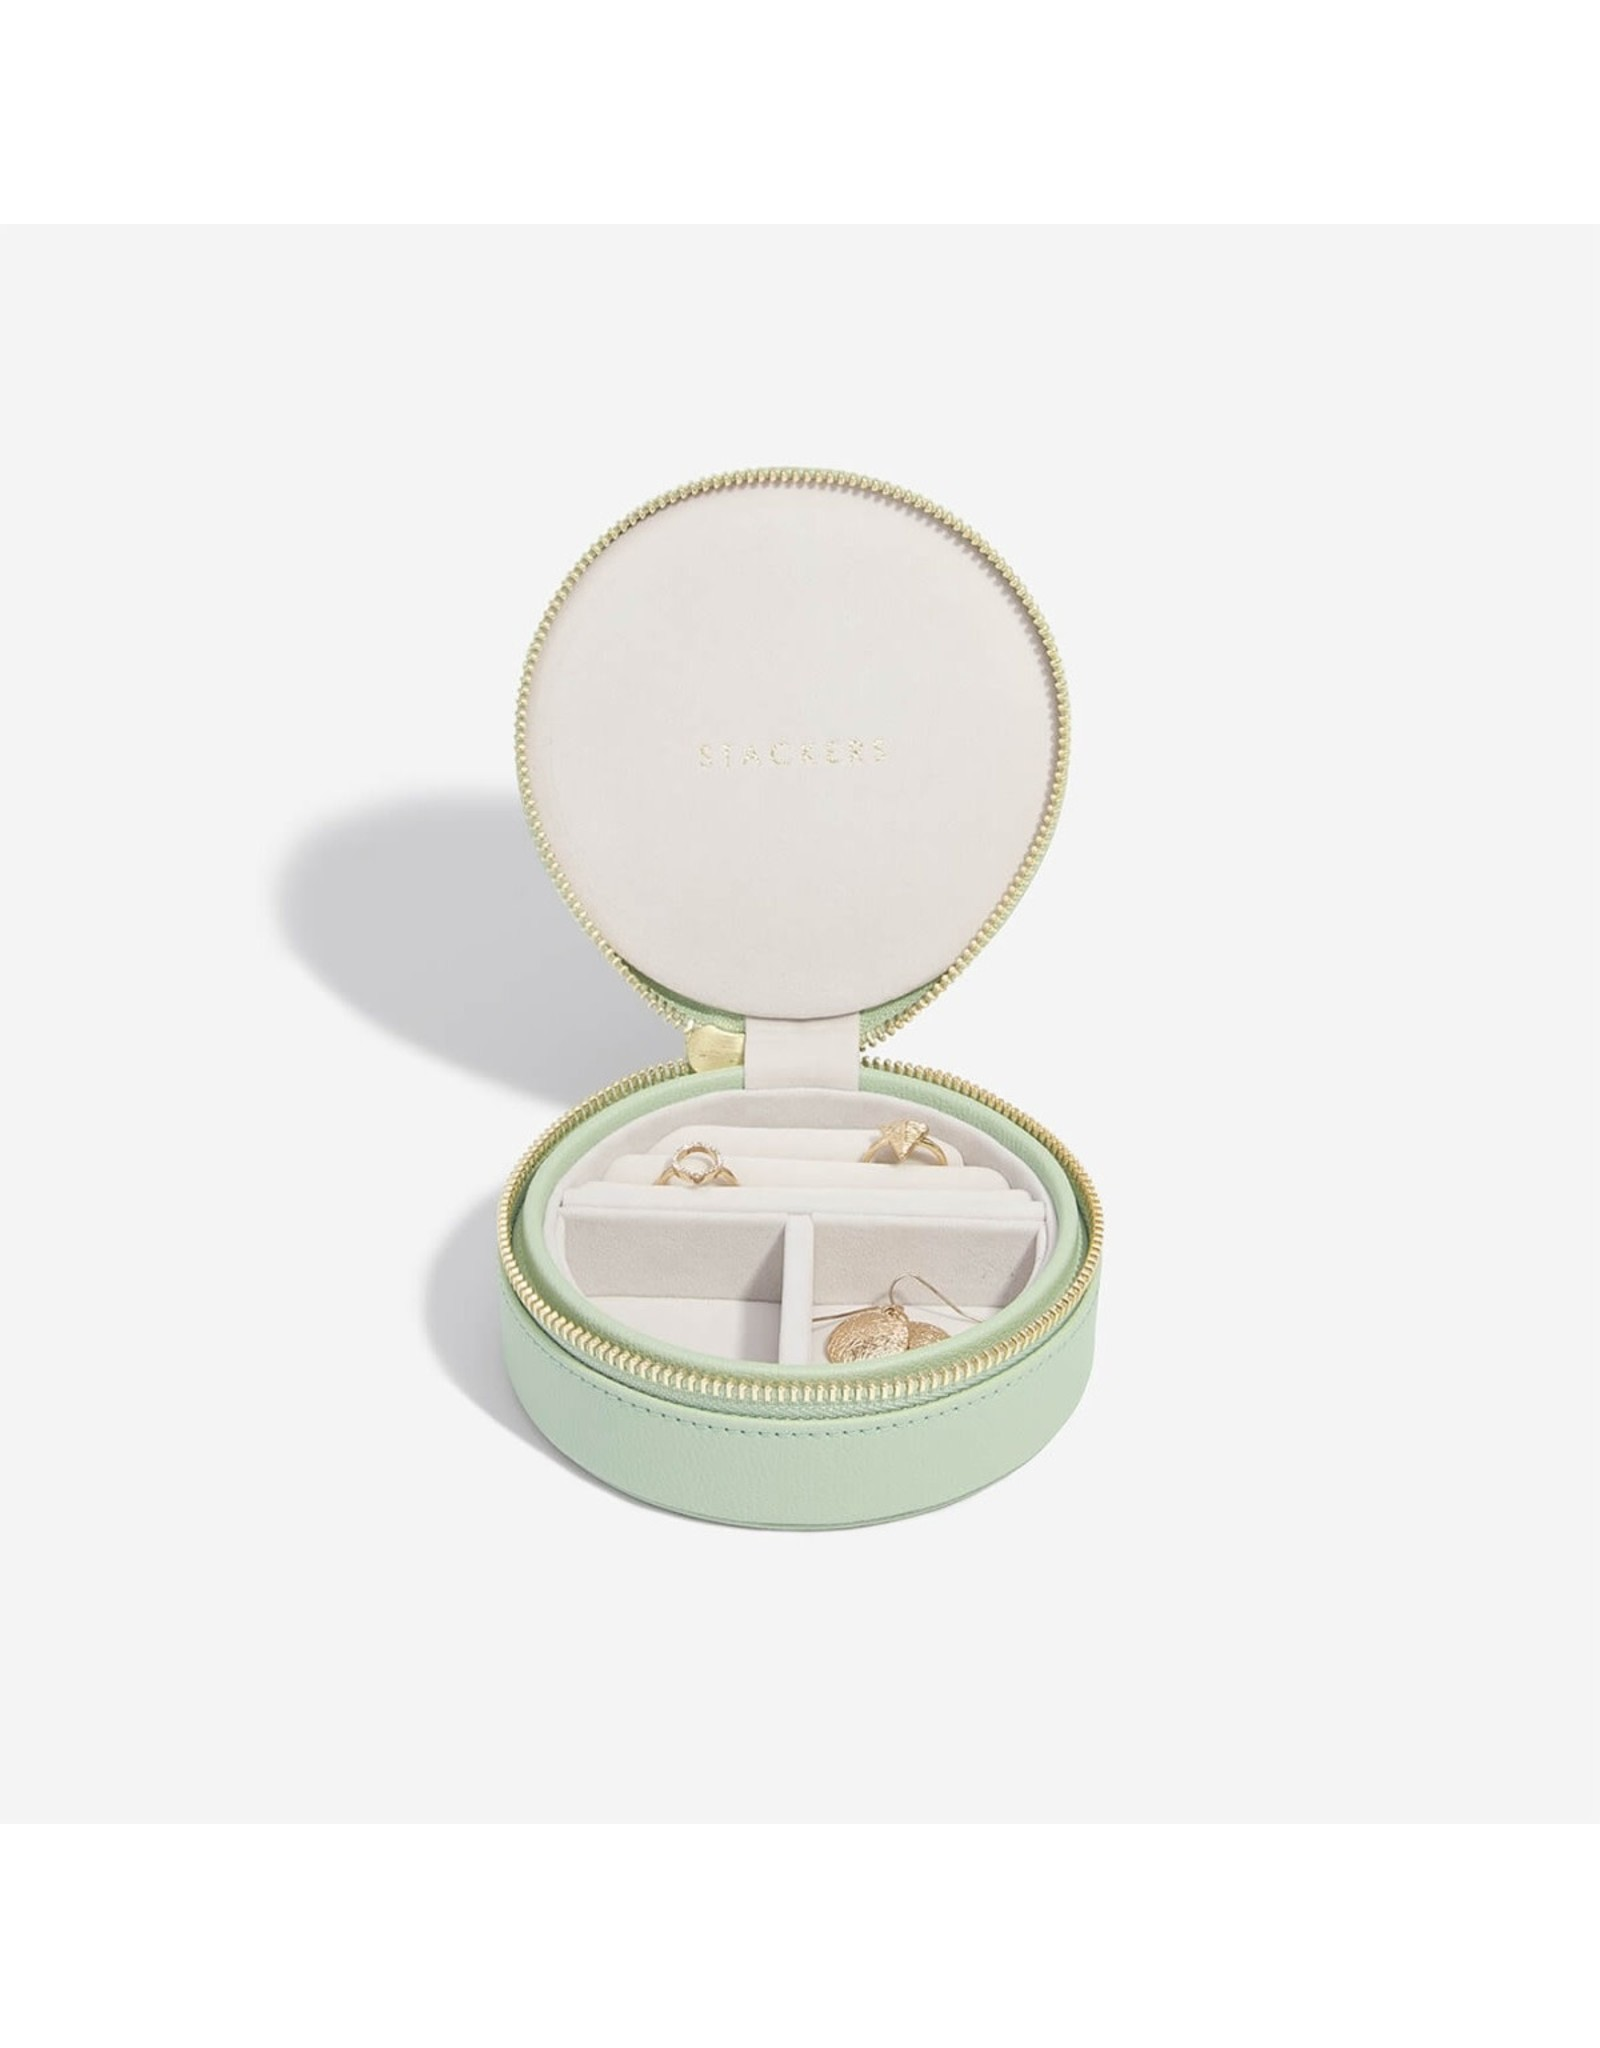 Stackers Sage Green - Travelbox - Rond